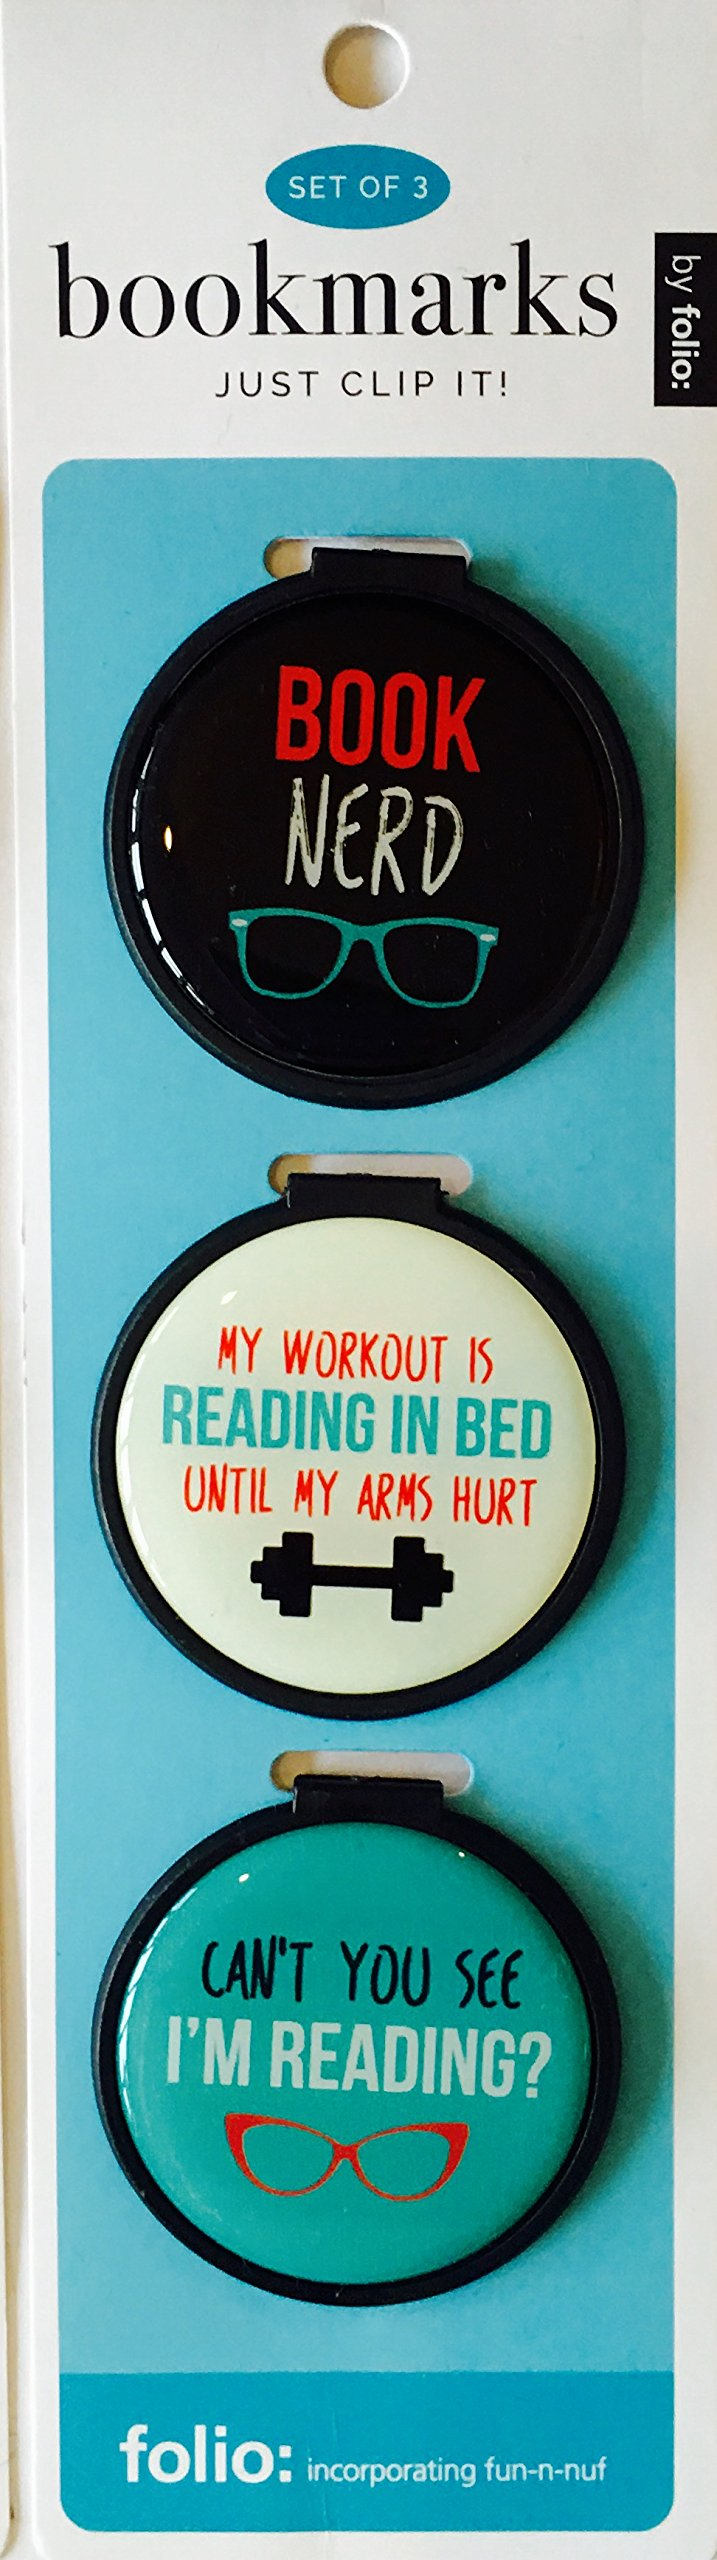 "Just Clip it! Quote Bookmarks - (Set of 3 clip over the page markers) - BOOK NERD, MY WORKOUT is READING IN BED, Can't you see I""M READING."